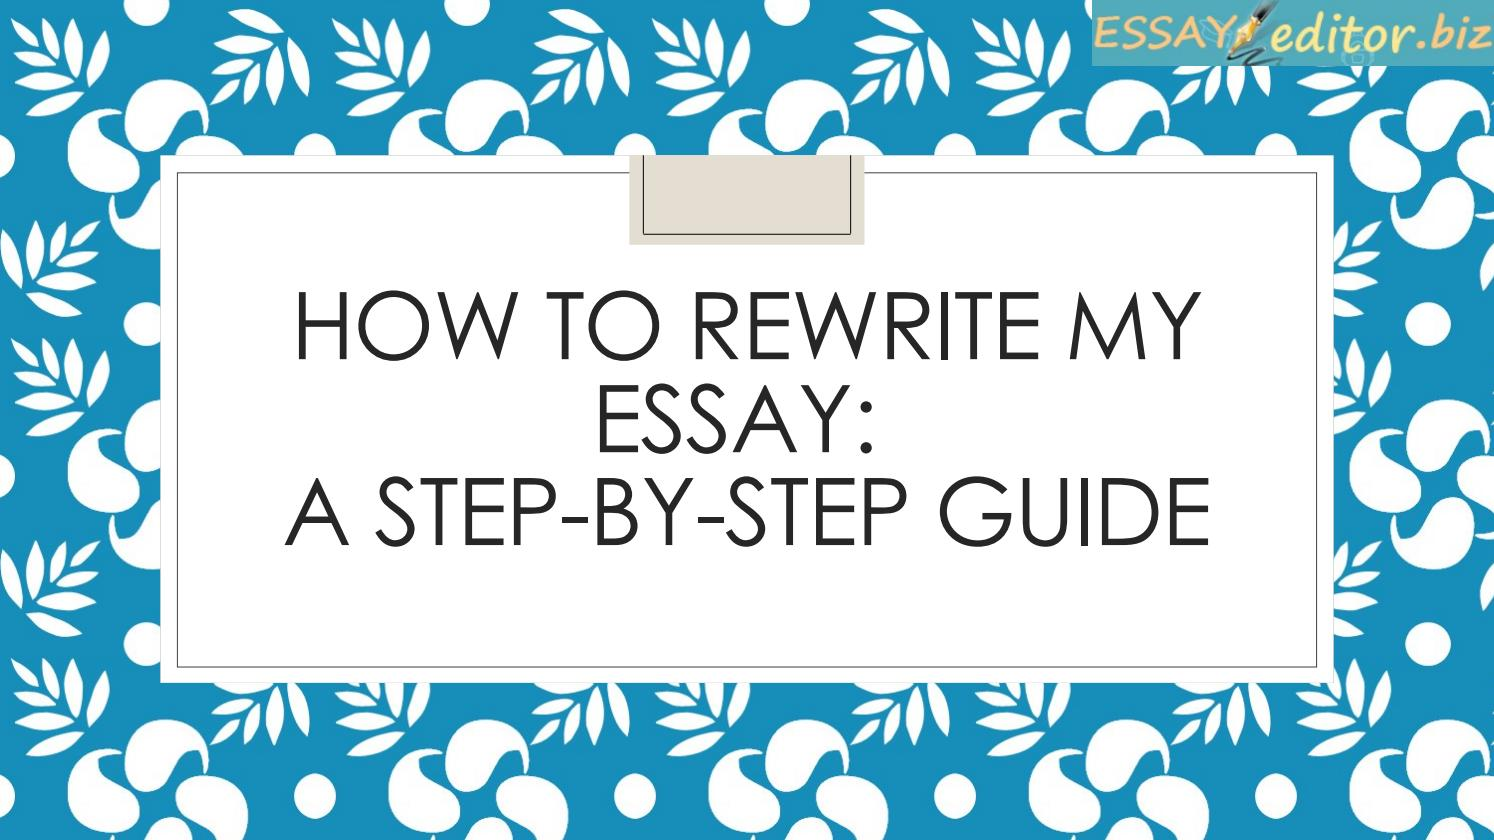 how to rewrite my essay step by step guide by essay editor issuu